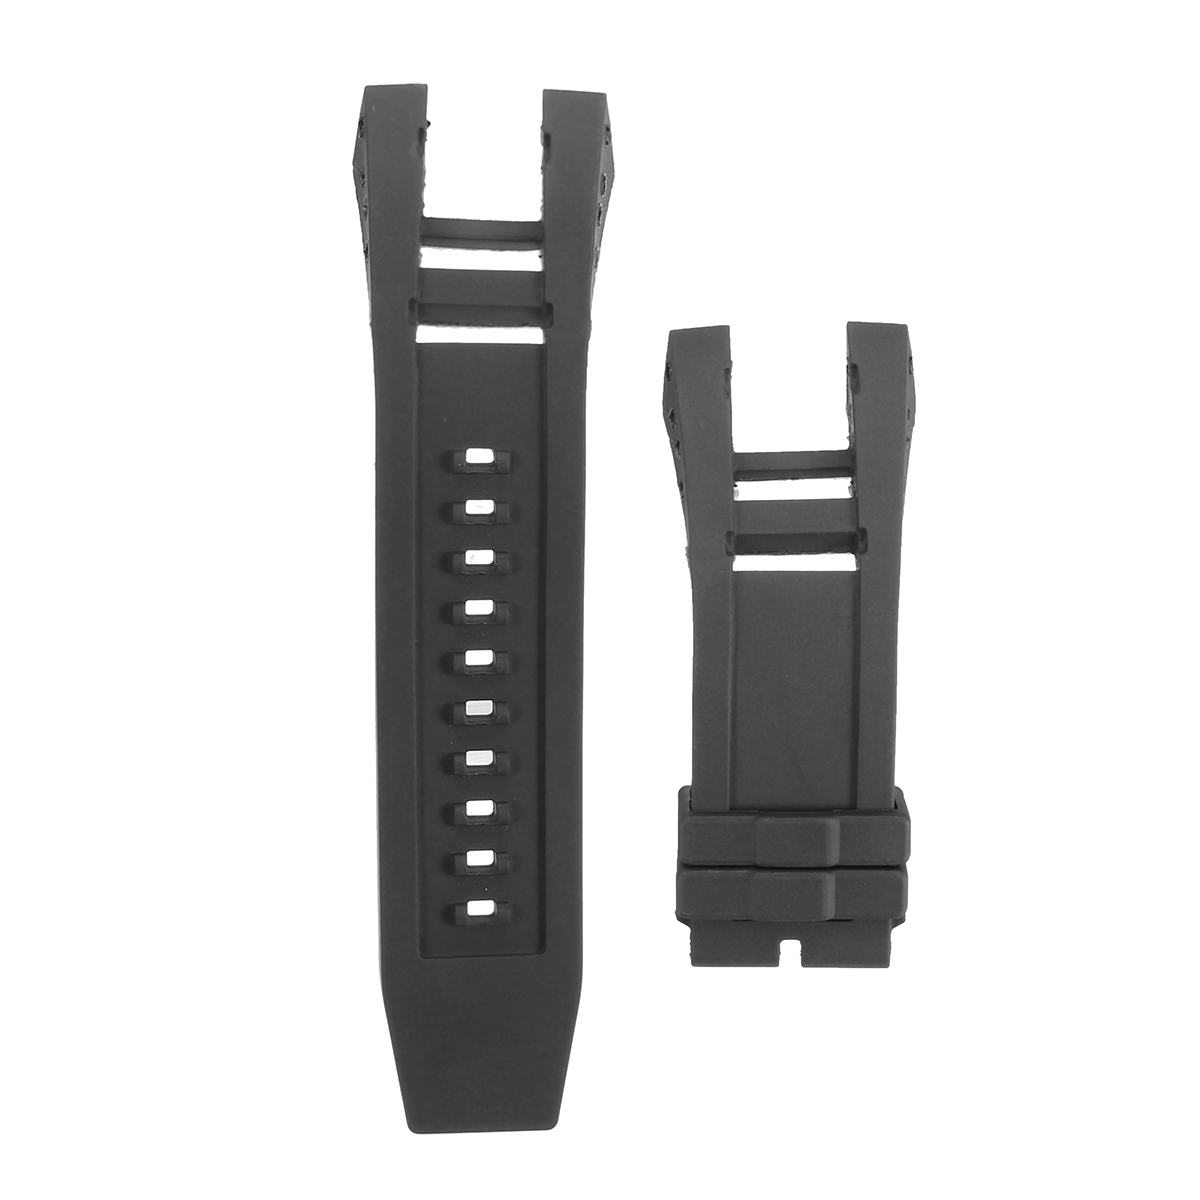 Silicone Watch Band Strap Replace for Invicta Subaqua N